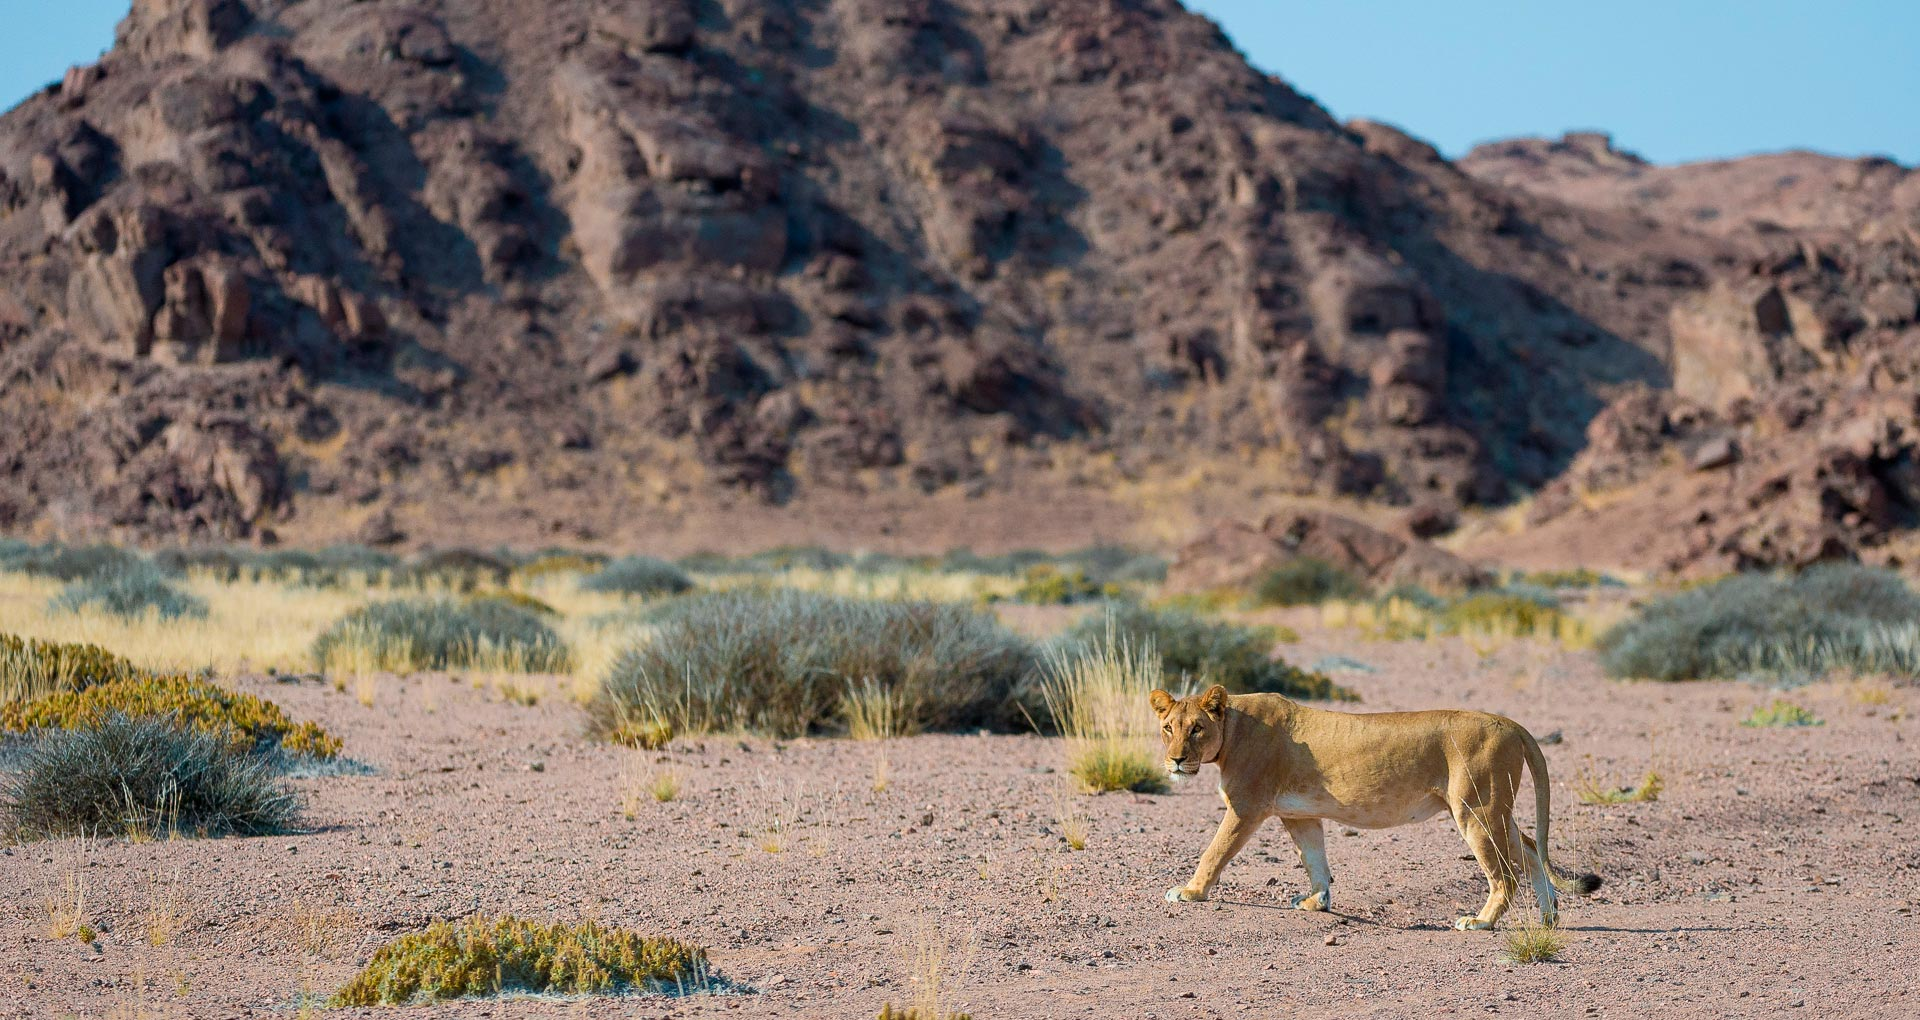 Highlights from Namibia